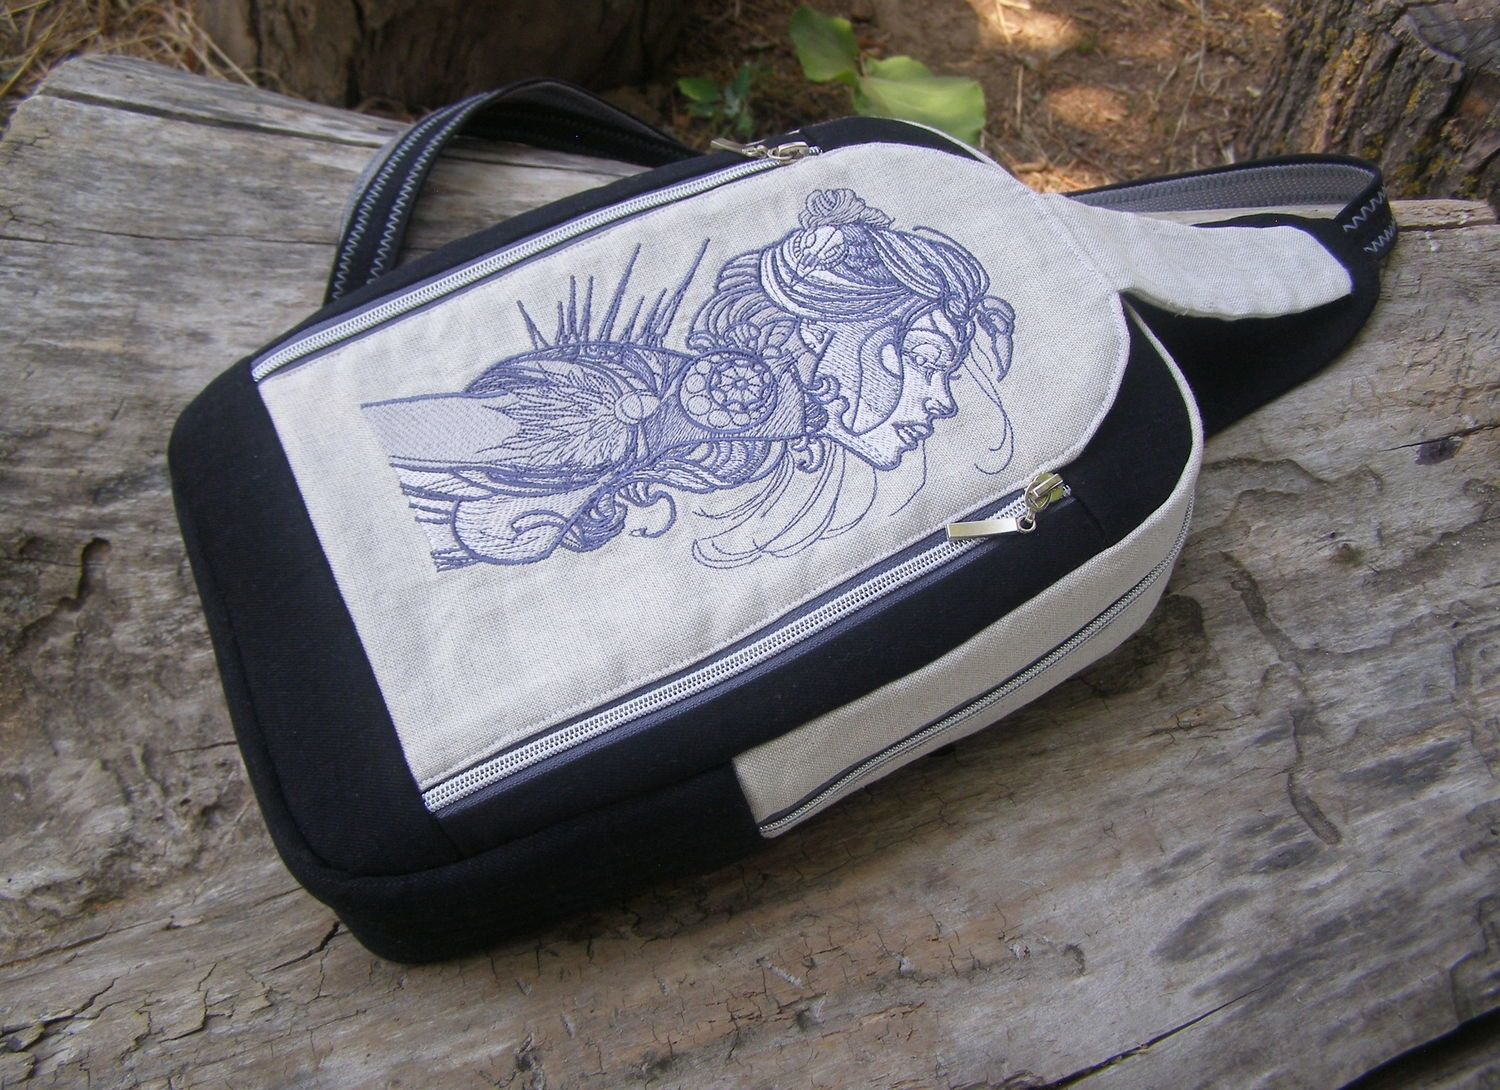 Embroidered backpack with Lady dreamcatcher design